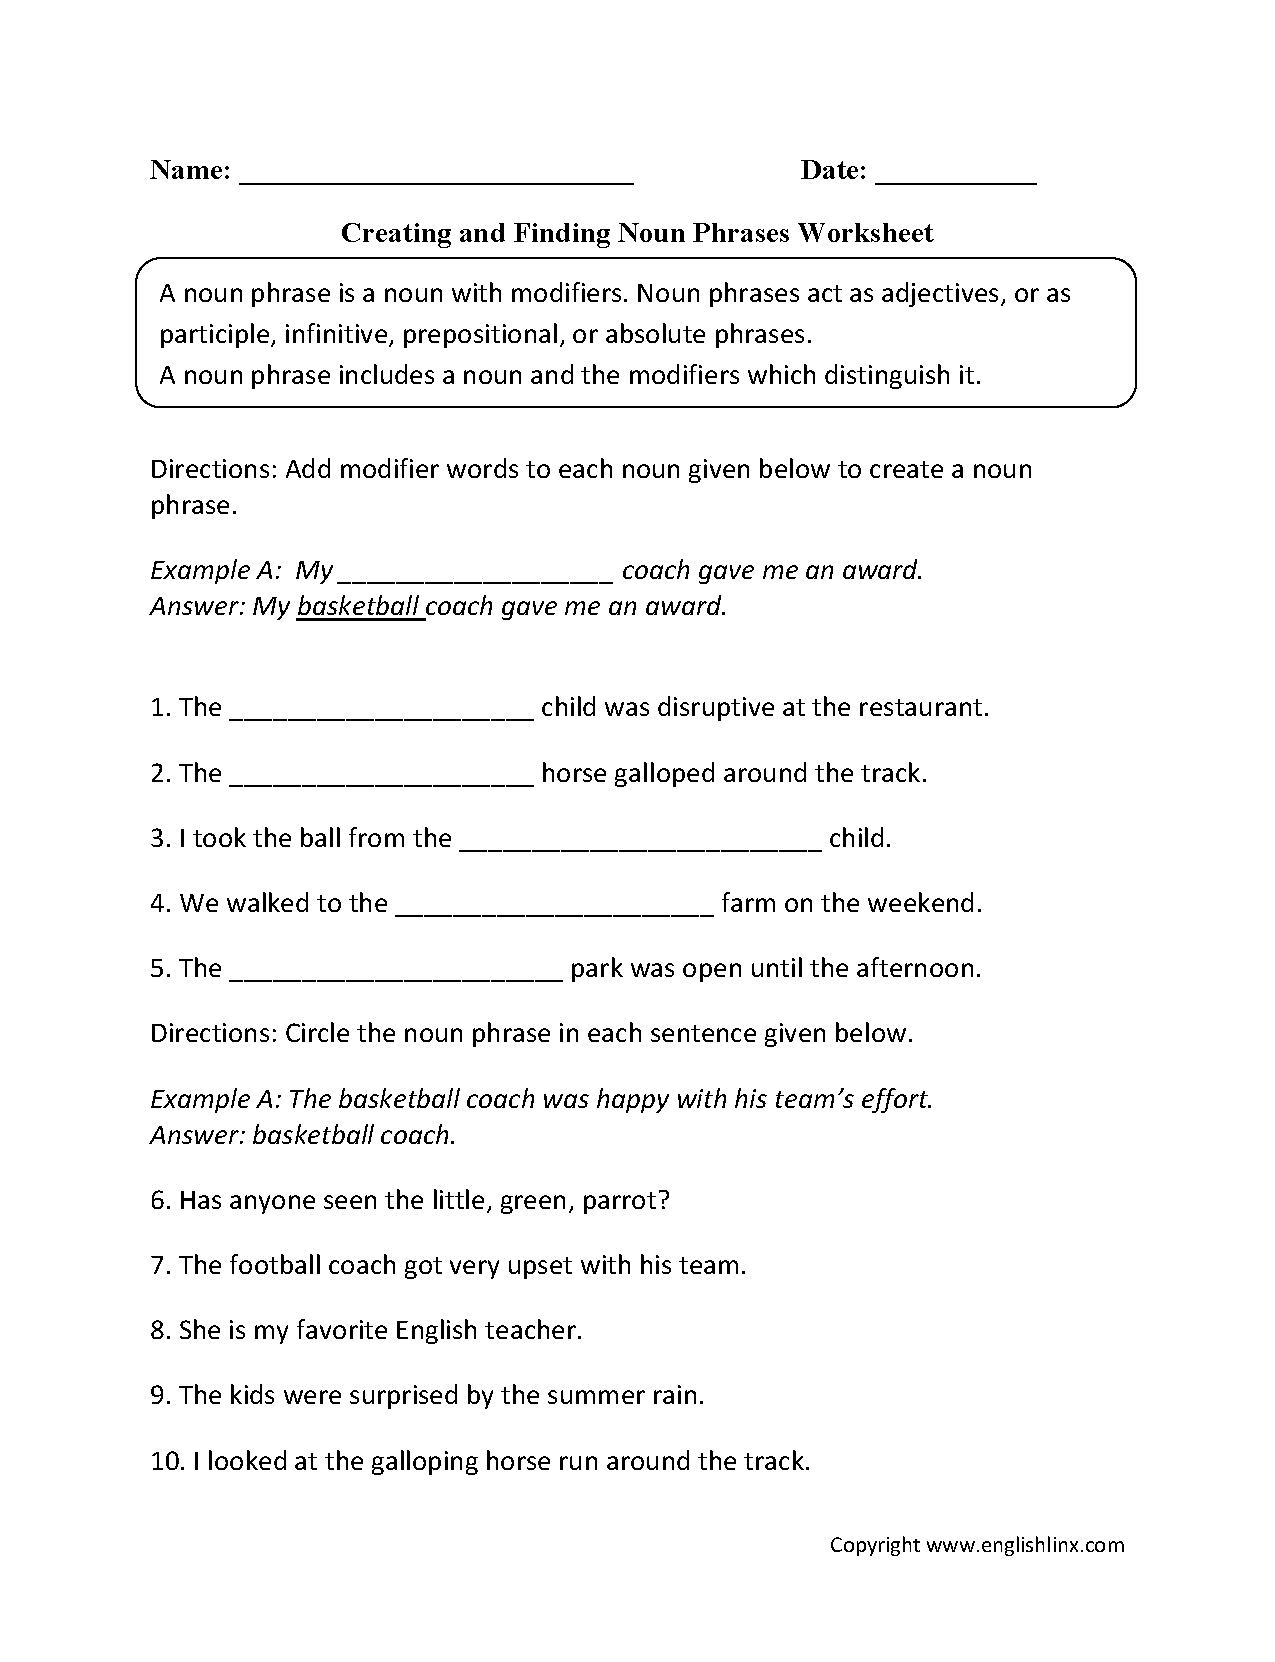 Nouns Worksheets | Noun Phrases Worksheets